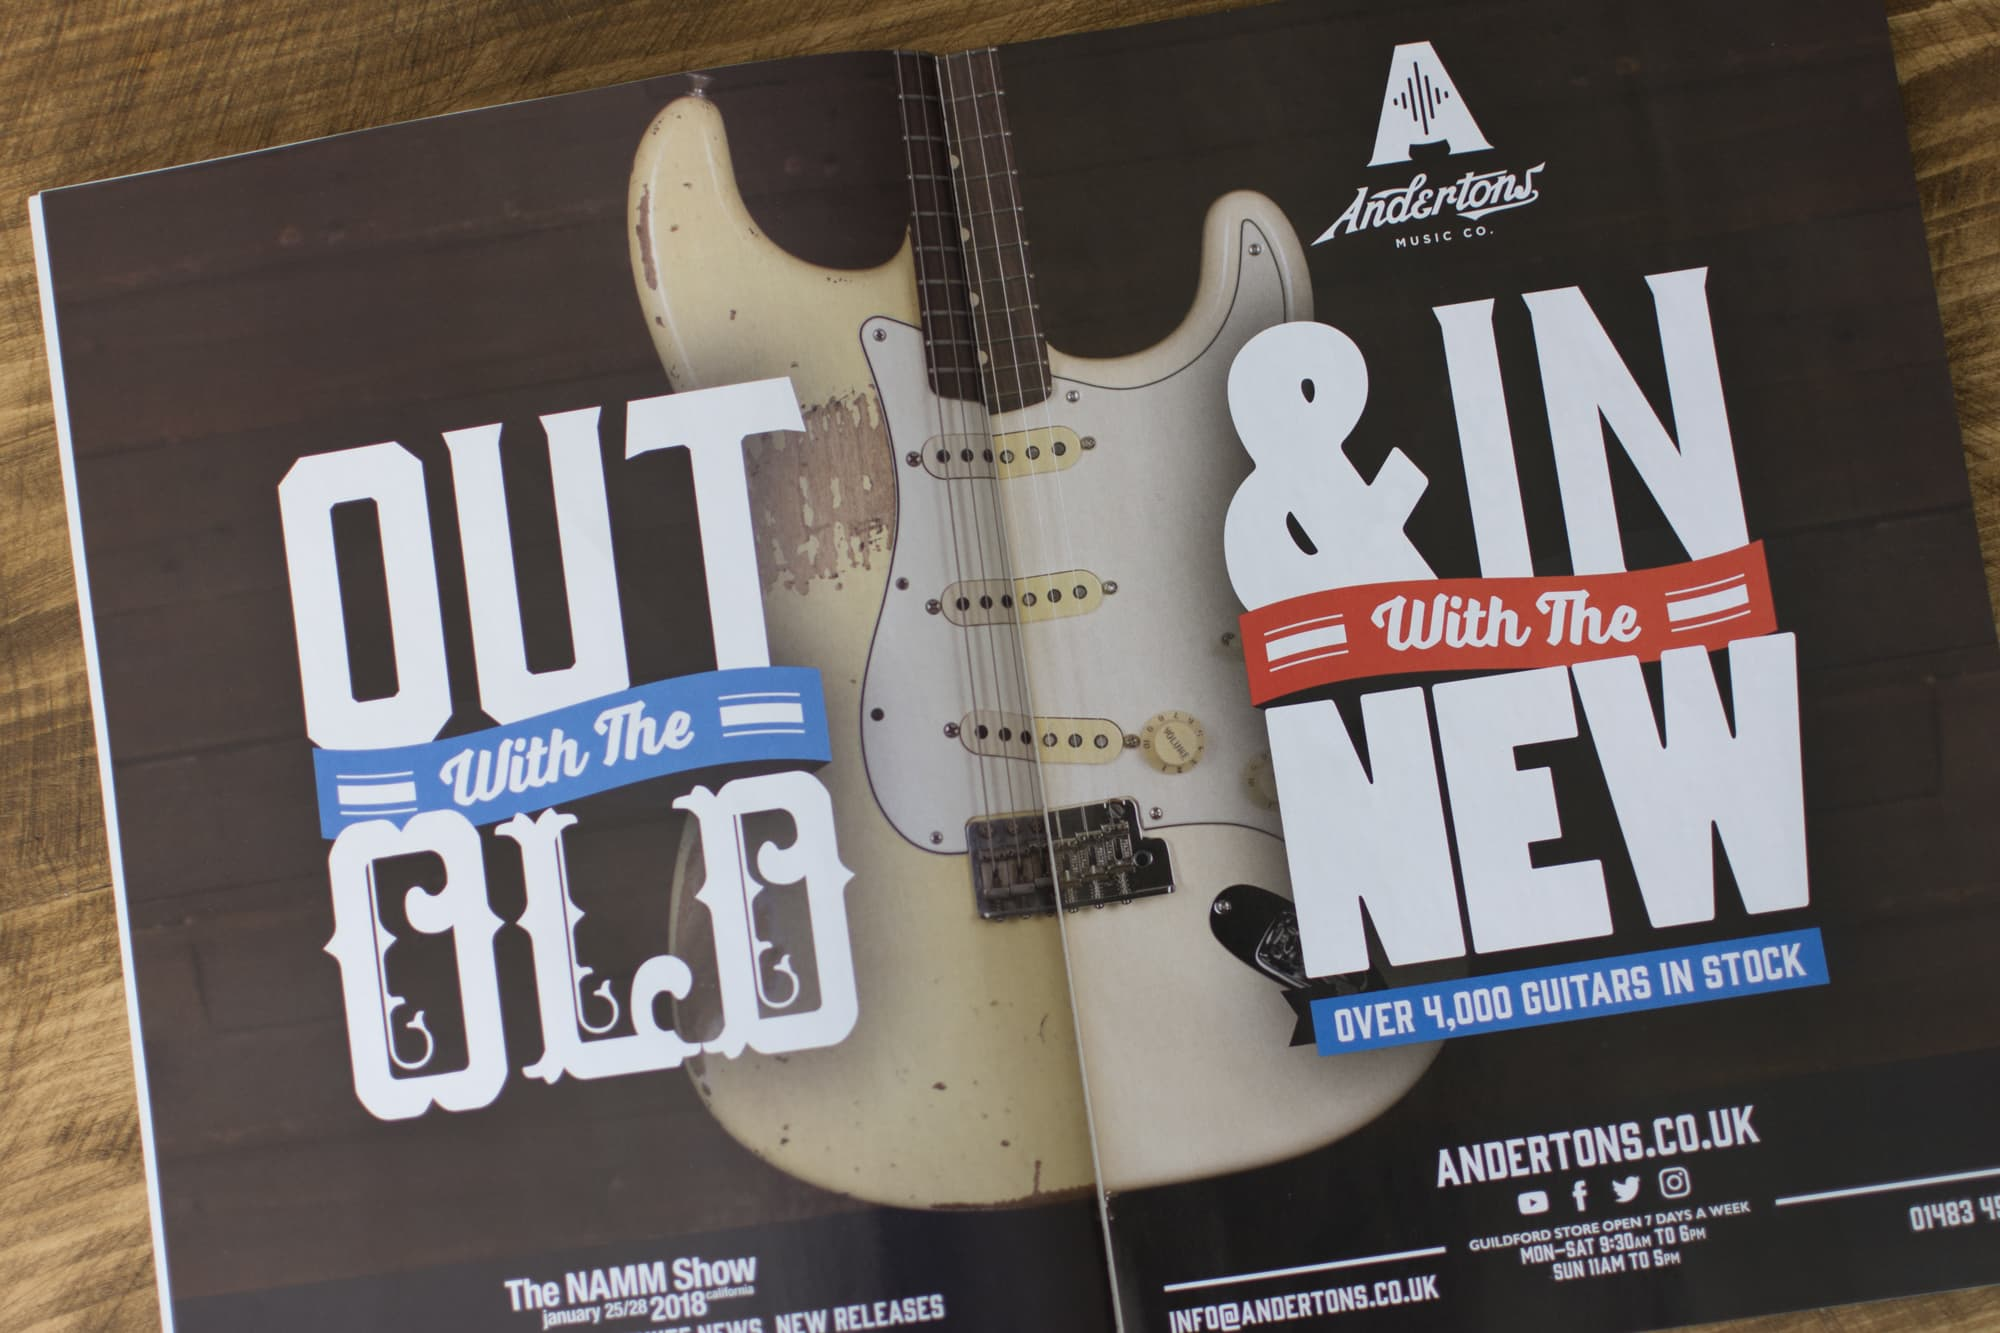 Andertons Music Co: Guitarist Magazine Advertising - Issue 429